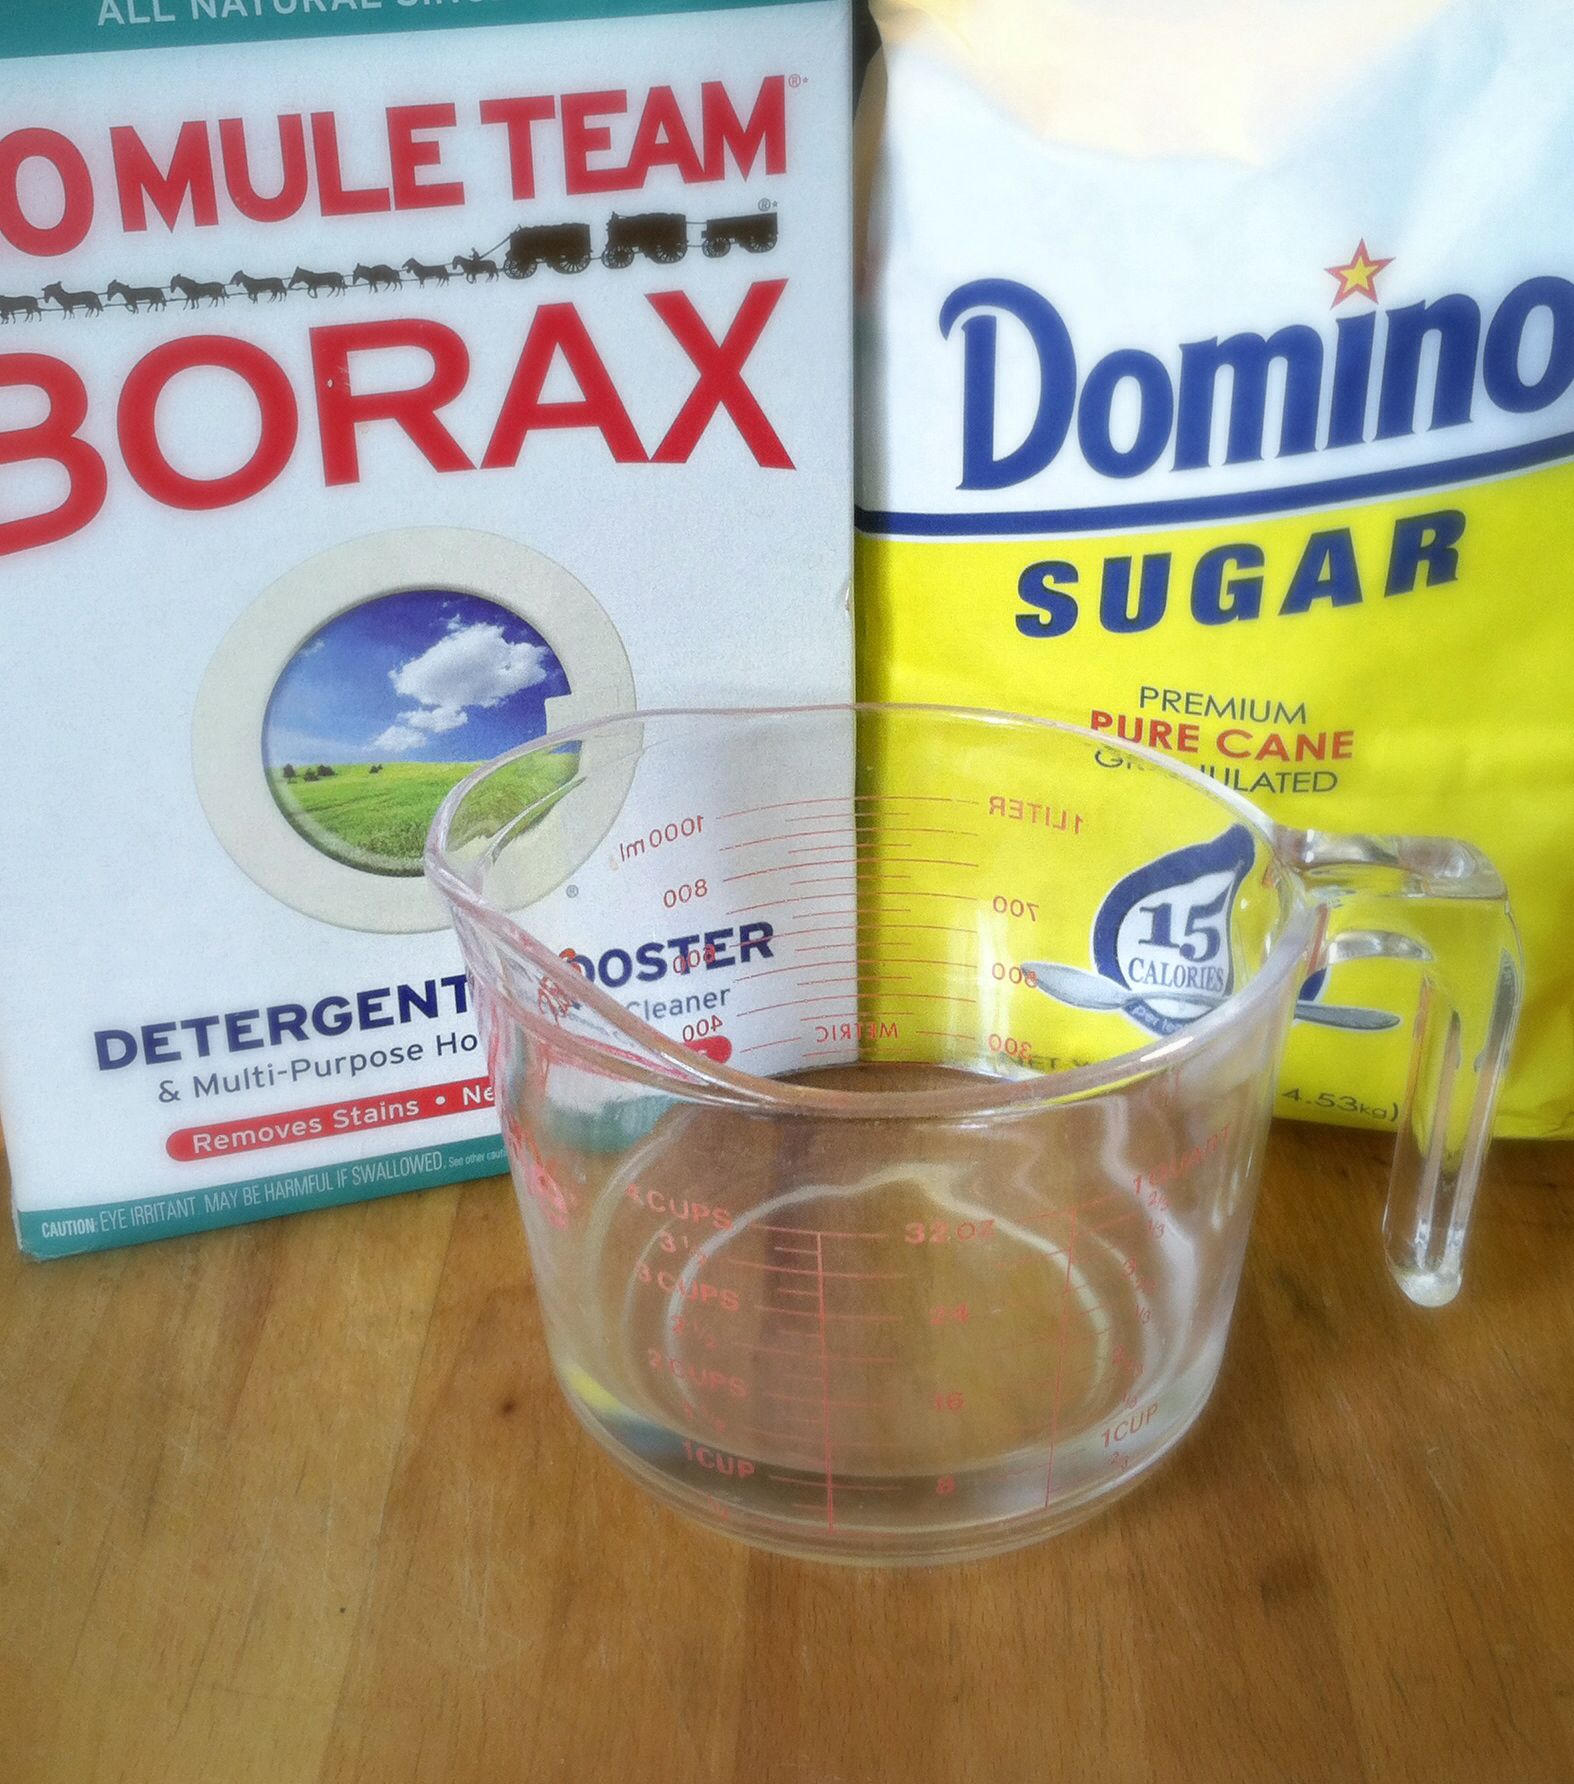 How To Kill Ants In Kitchen Cabinets: ALL NATURAL ANT KILLER! Equal Parts White Sugar And Borax